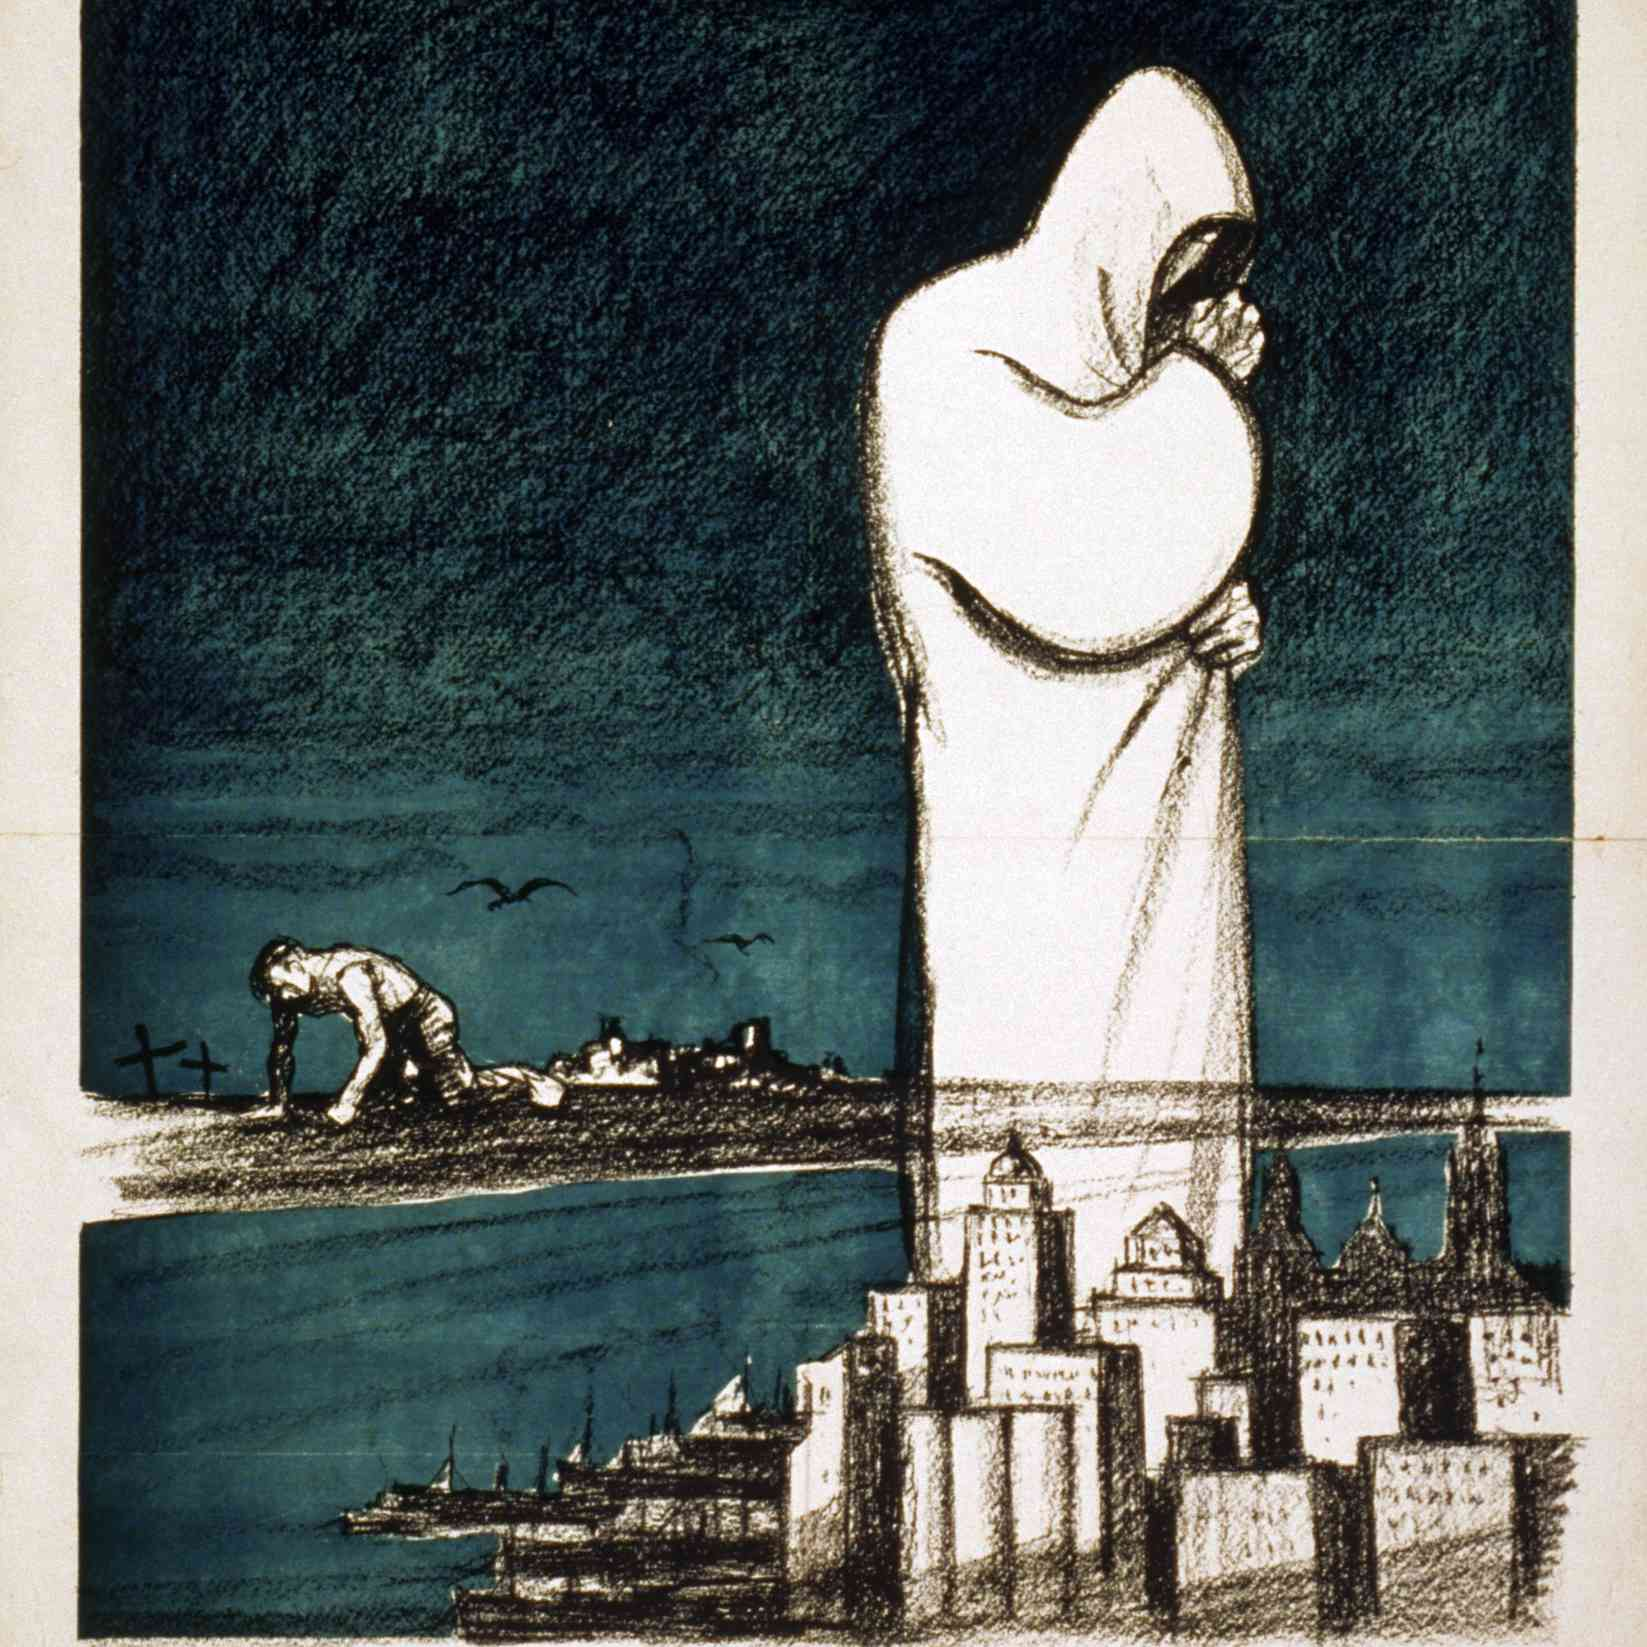 The Isolationist Poster, 1924